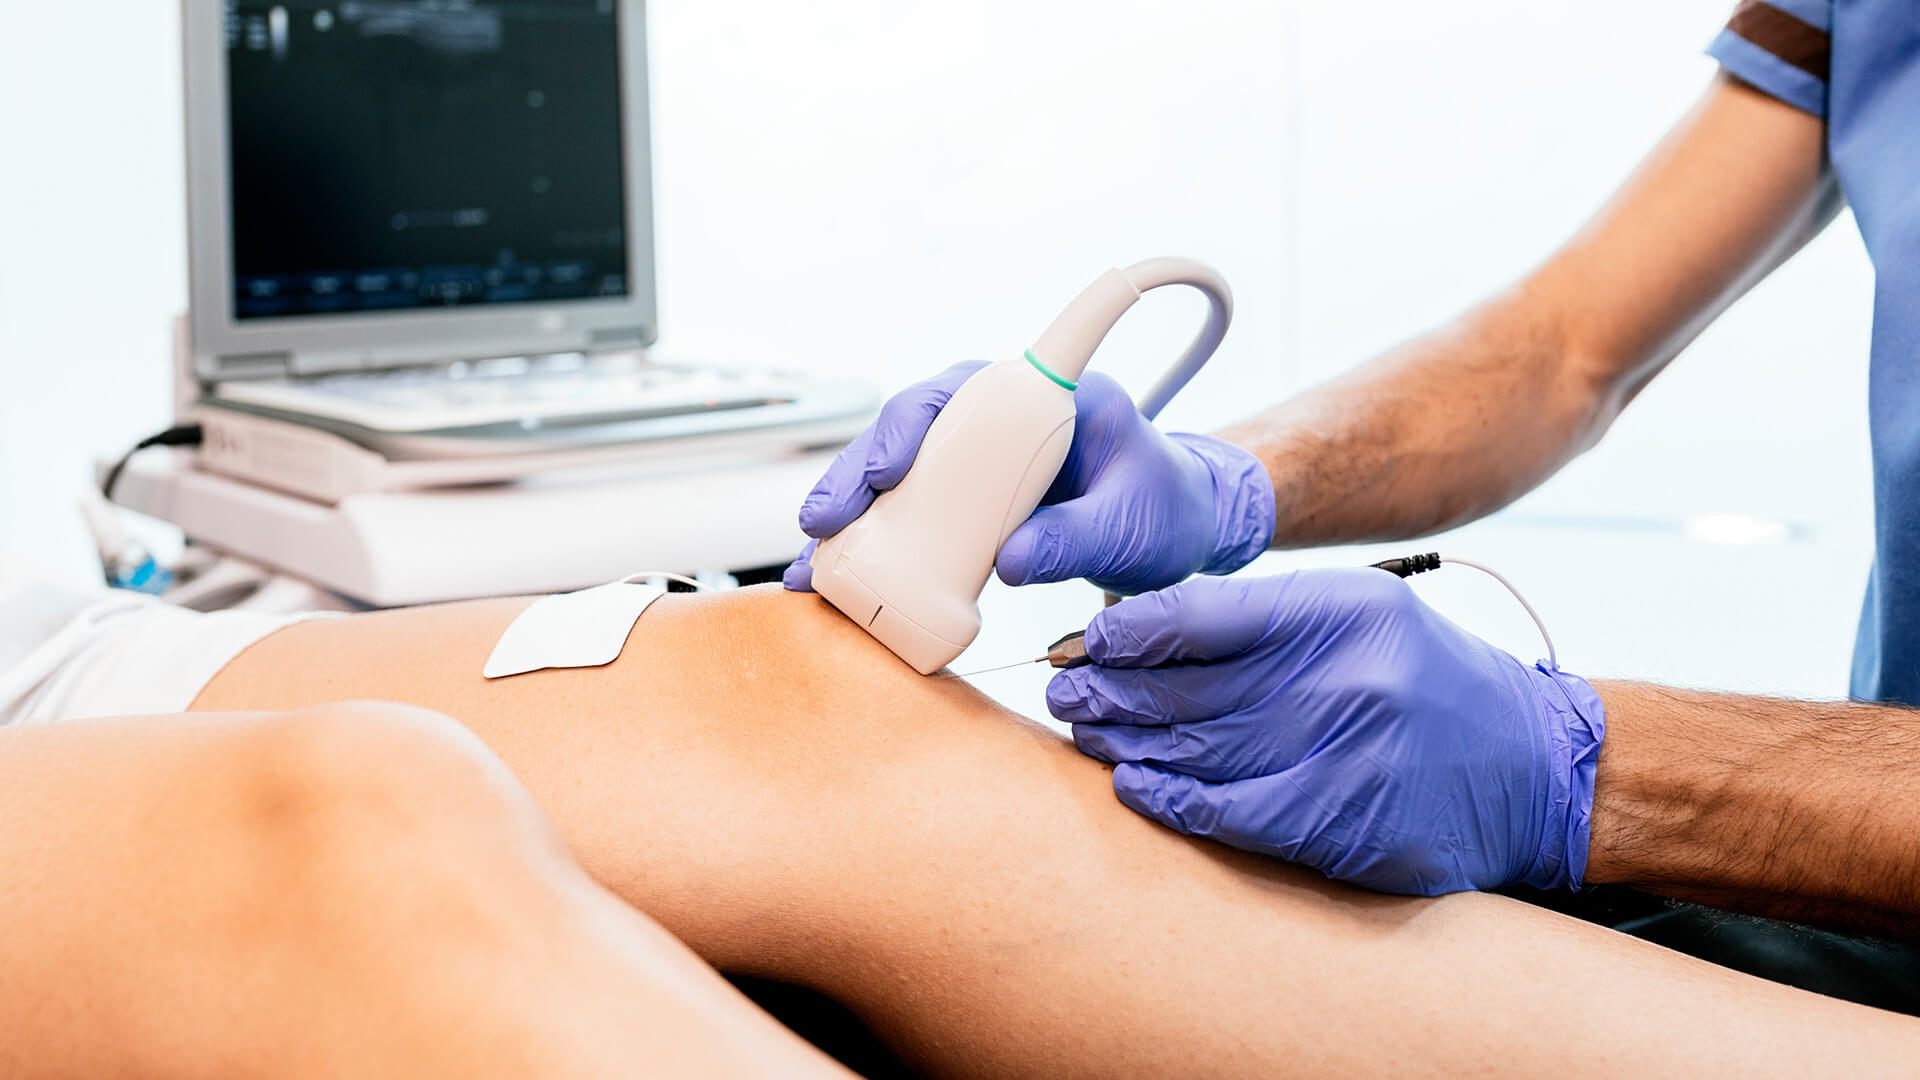 Regenerative medicine, increasingly utilized for sports and musculoskeletal injuries and conditions,  includes a number of treatments with proven results in lessening joint and muscle pain while improving function.